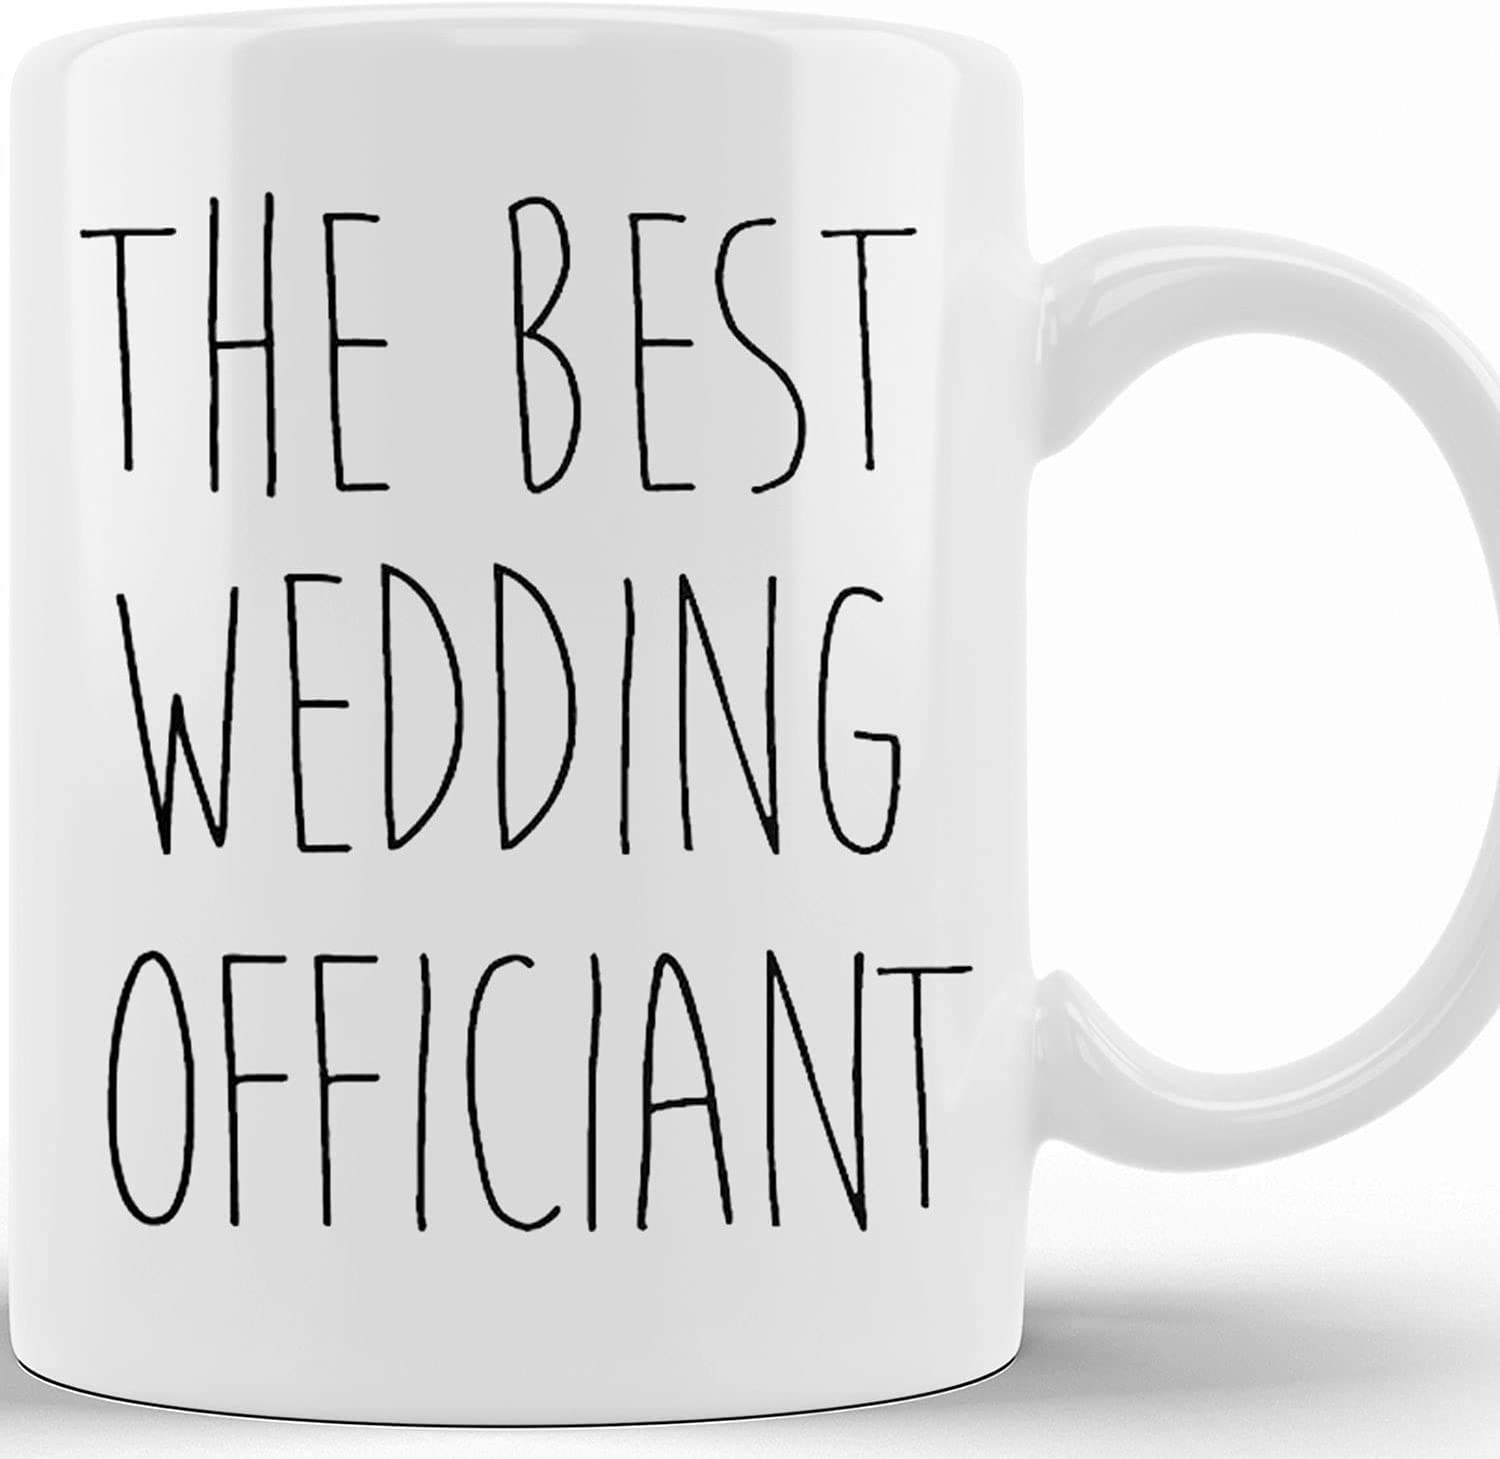 The Super popular specialty store Best Wedding Gift Excellent Officiant Personalized